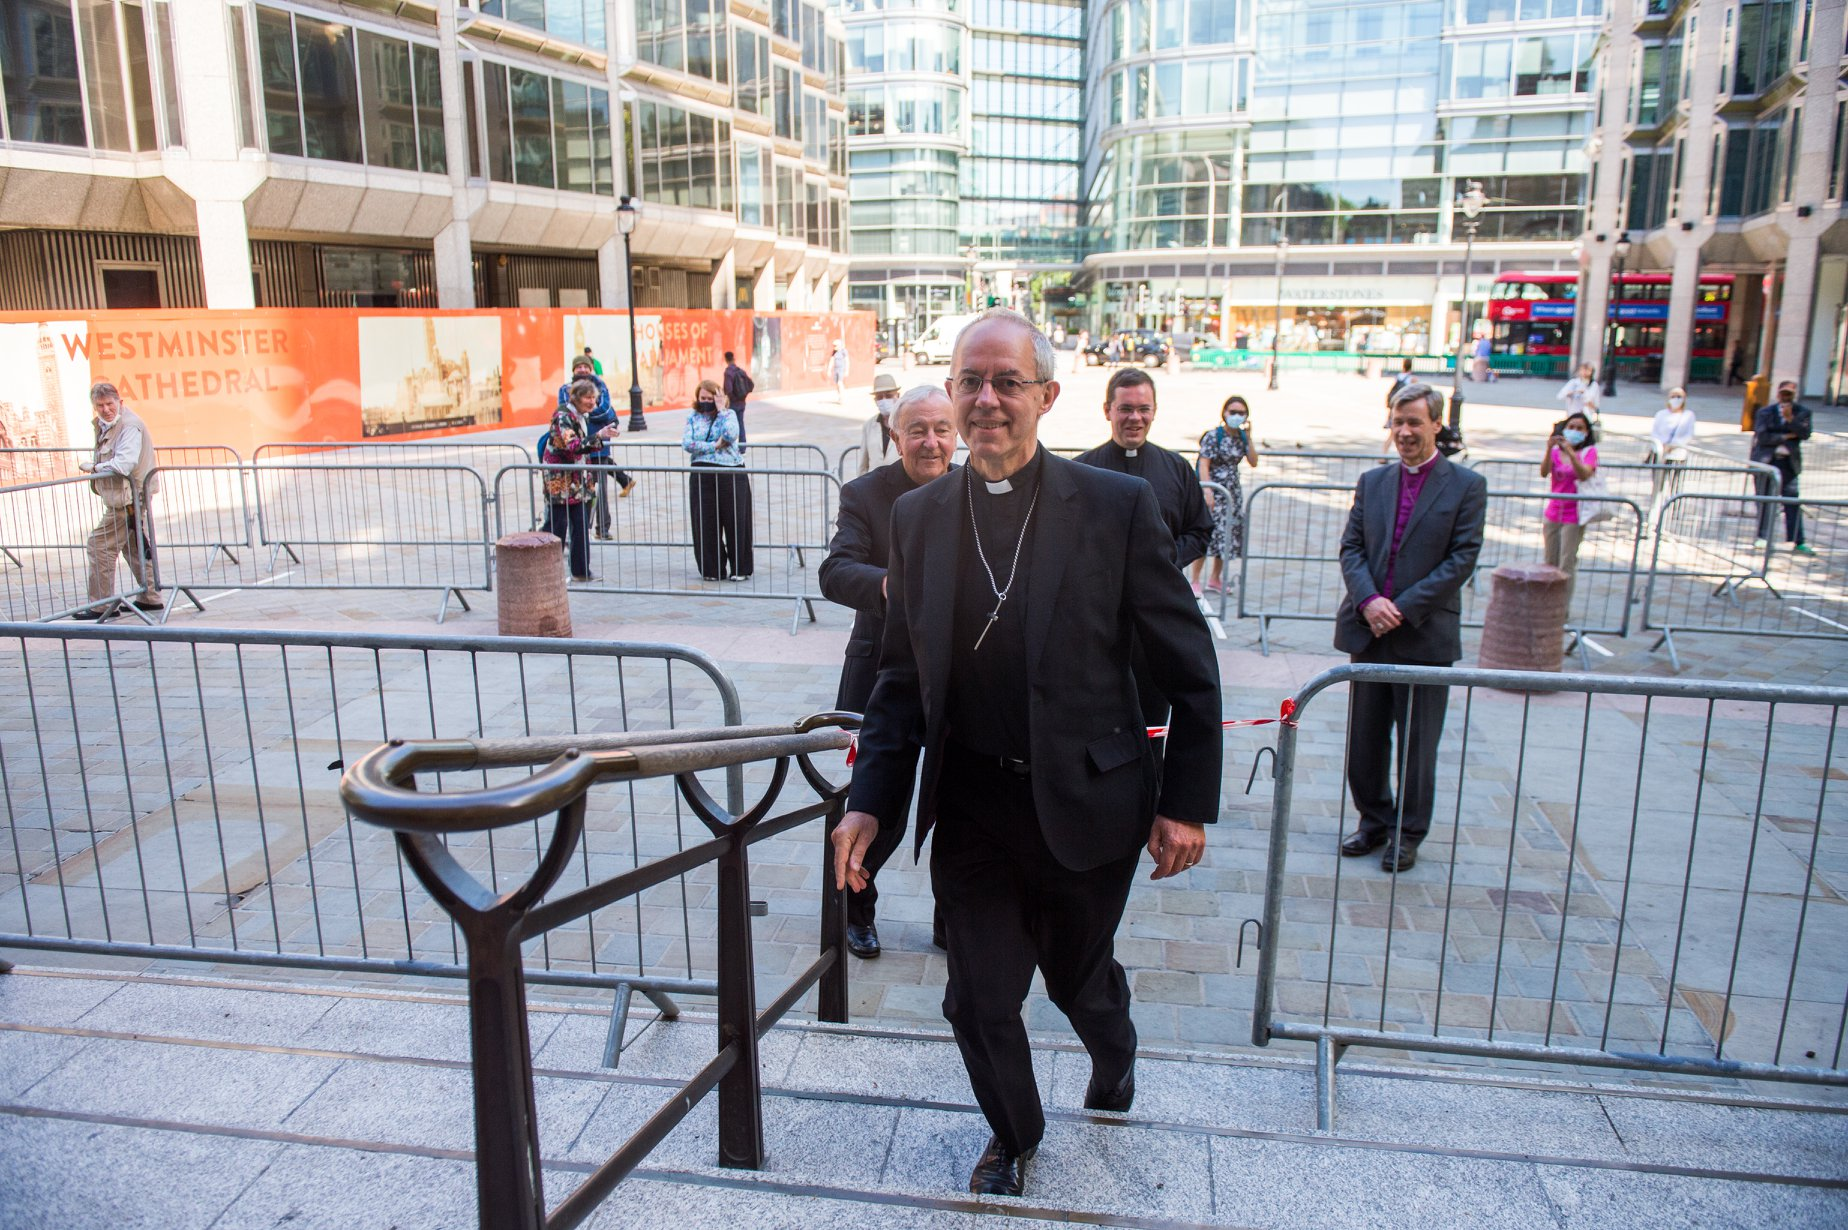 Archbishop Justin Welby and Cardinal Vincent Nichols entering Westminster Abbey on the first day of re-opening after the COVID-19 shutdown